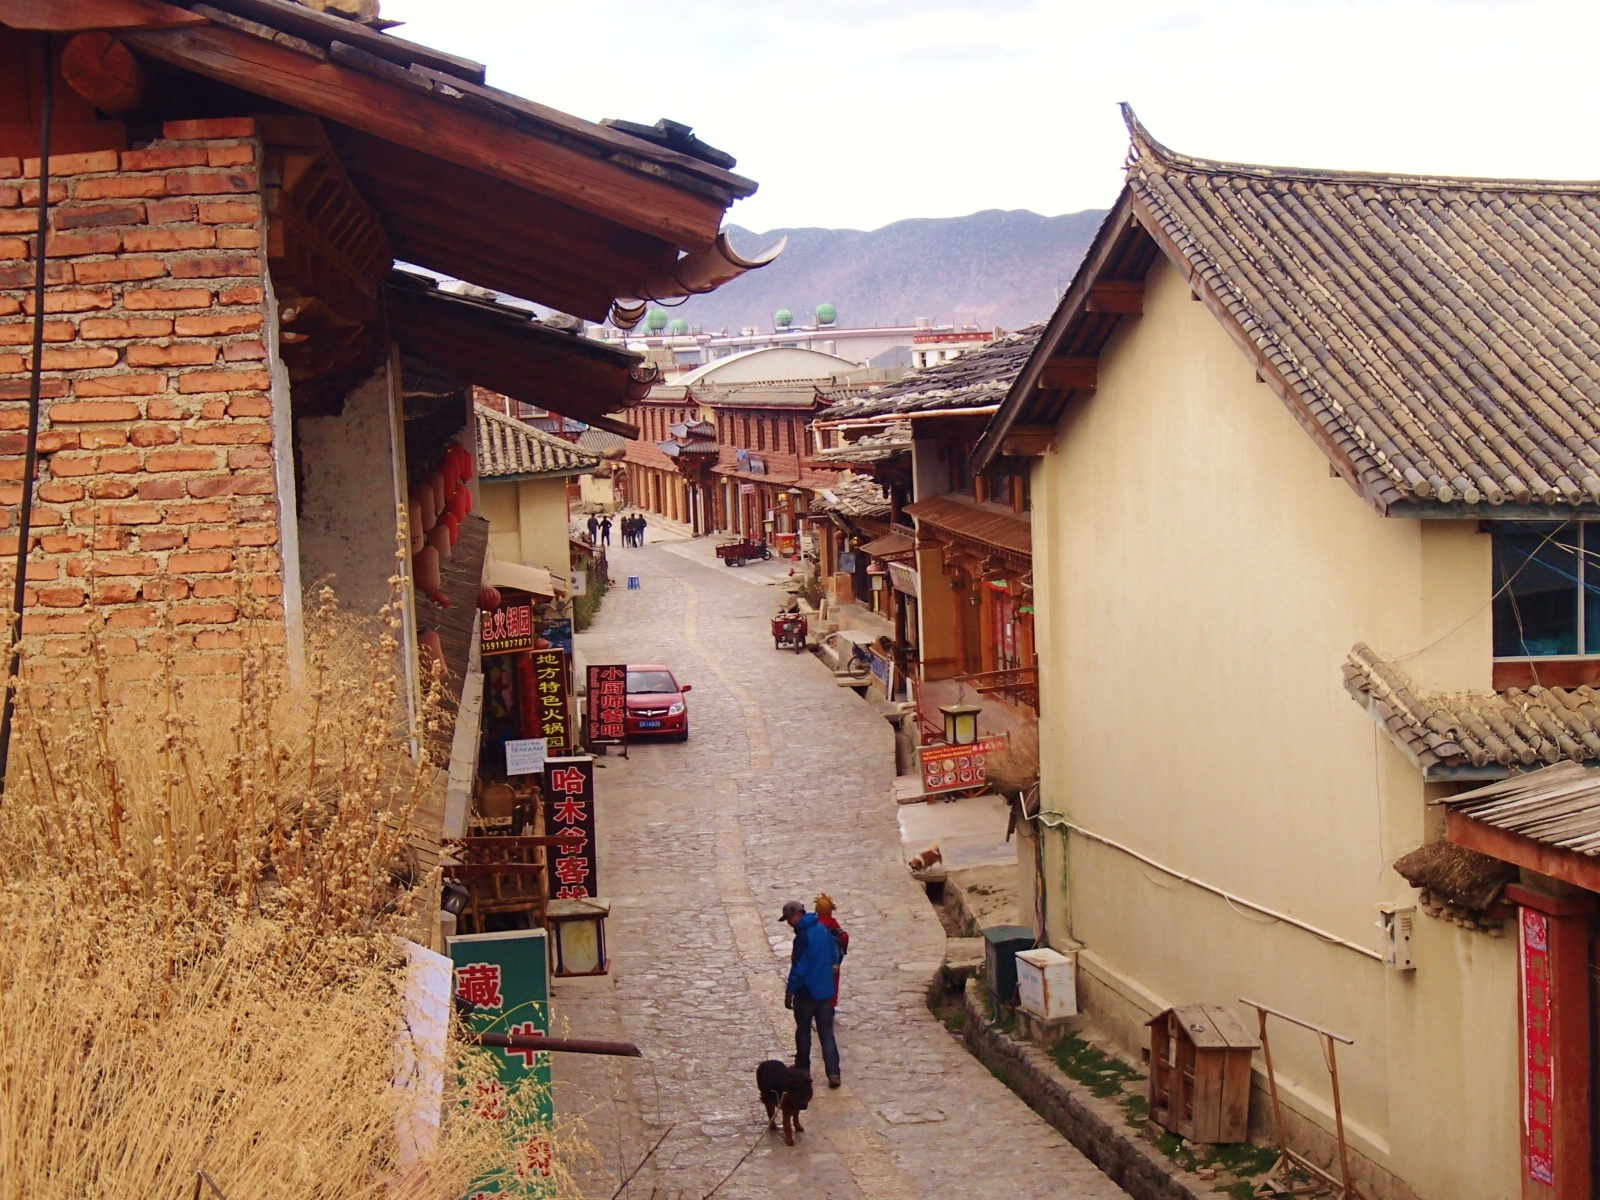 The old Town of Jiantang